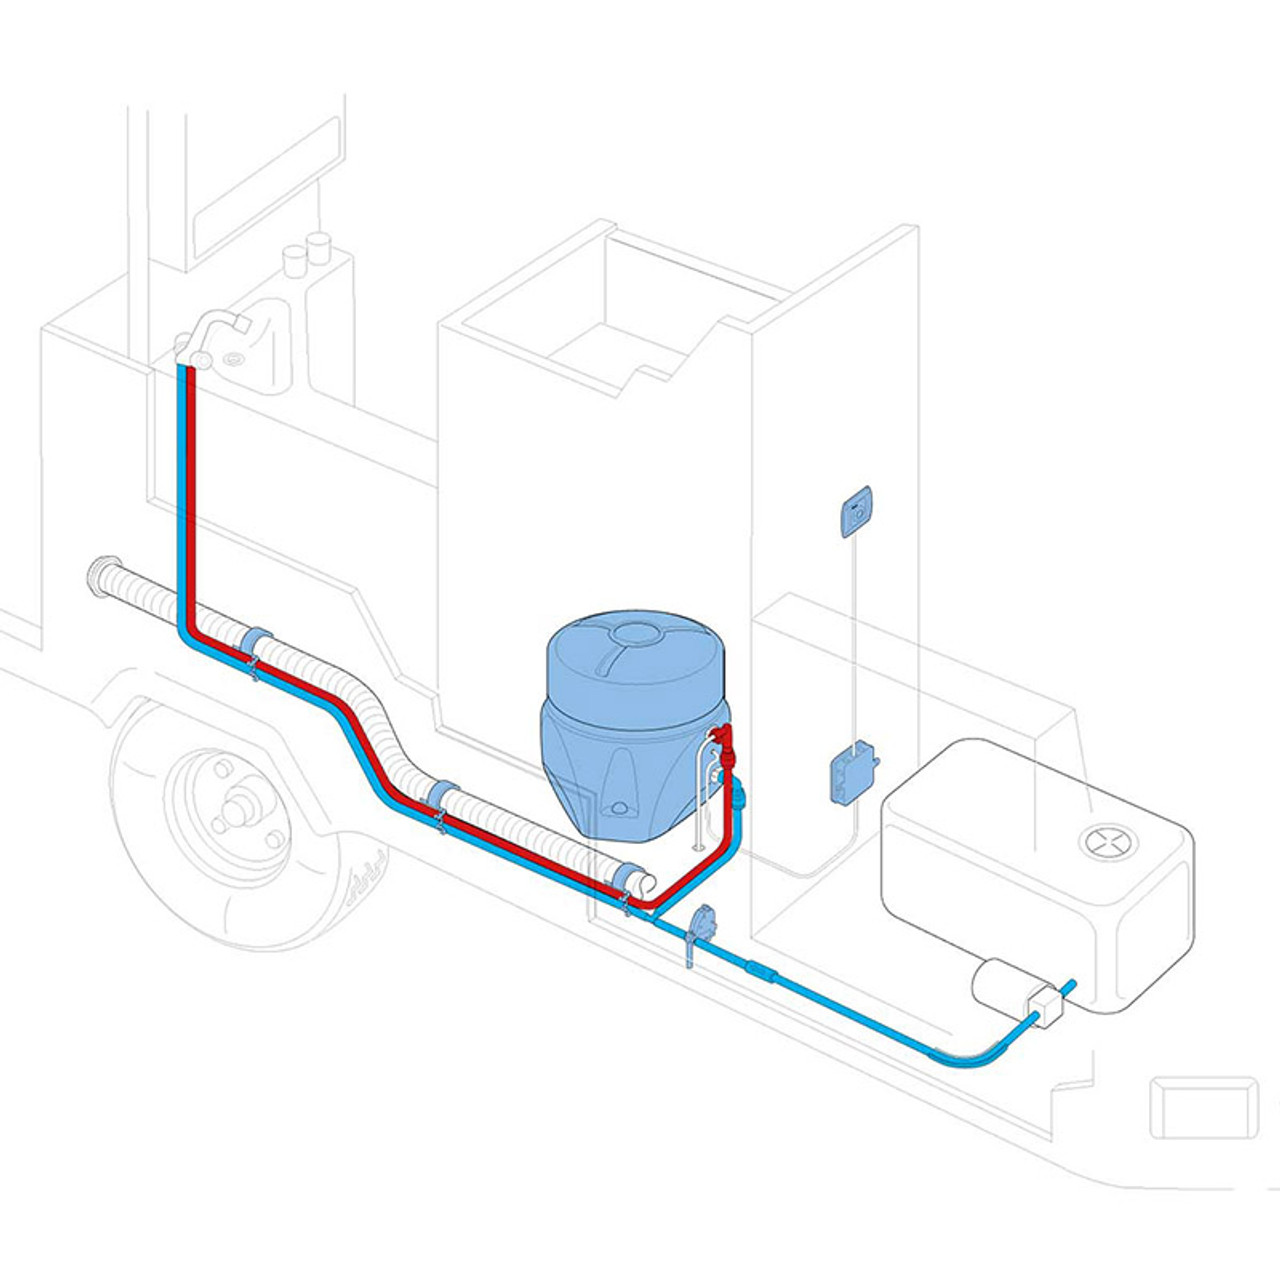 An example installation of an electric water heater by Truma.